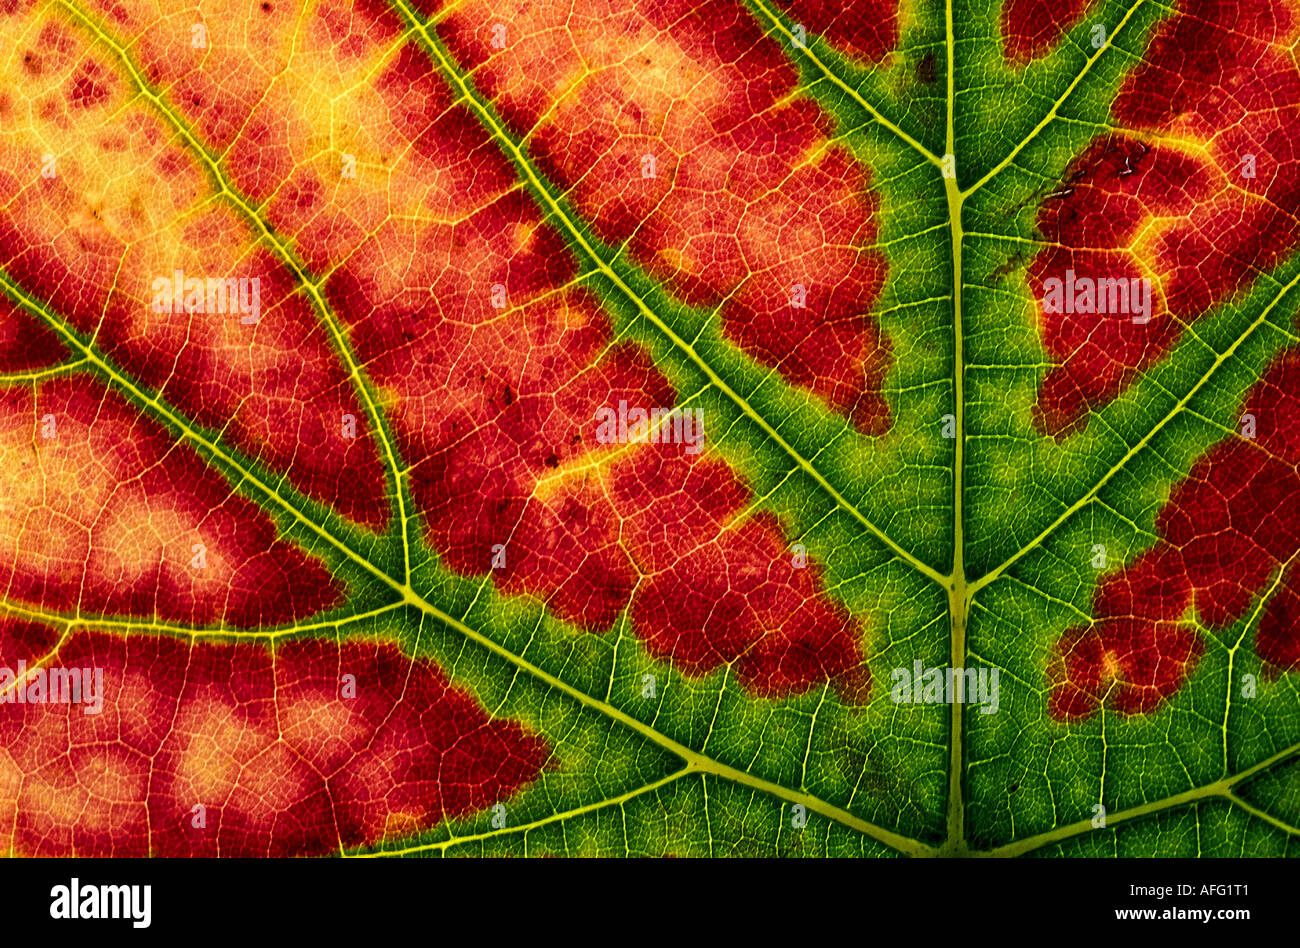 Weinblatt Herbstfaerbung Photo Stock